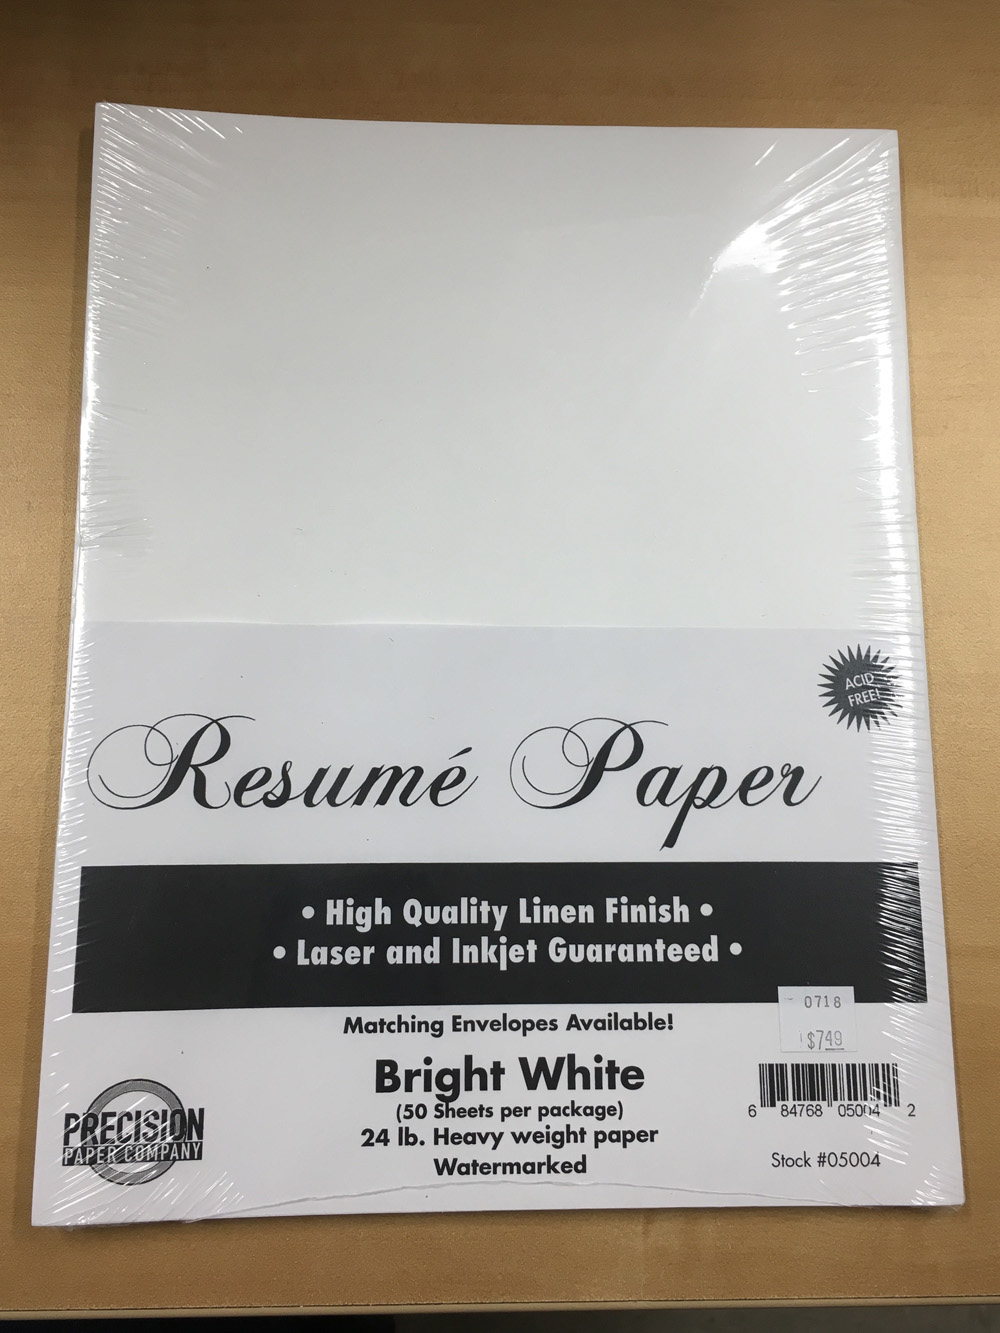 brght resume paper university bookstore linen tennis for college phoenix writing services Resume Resume White Linen Paper